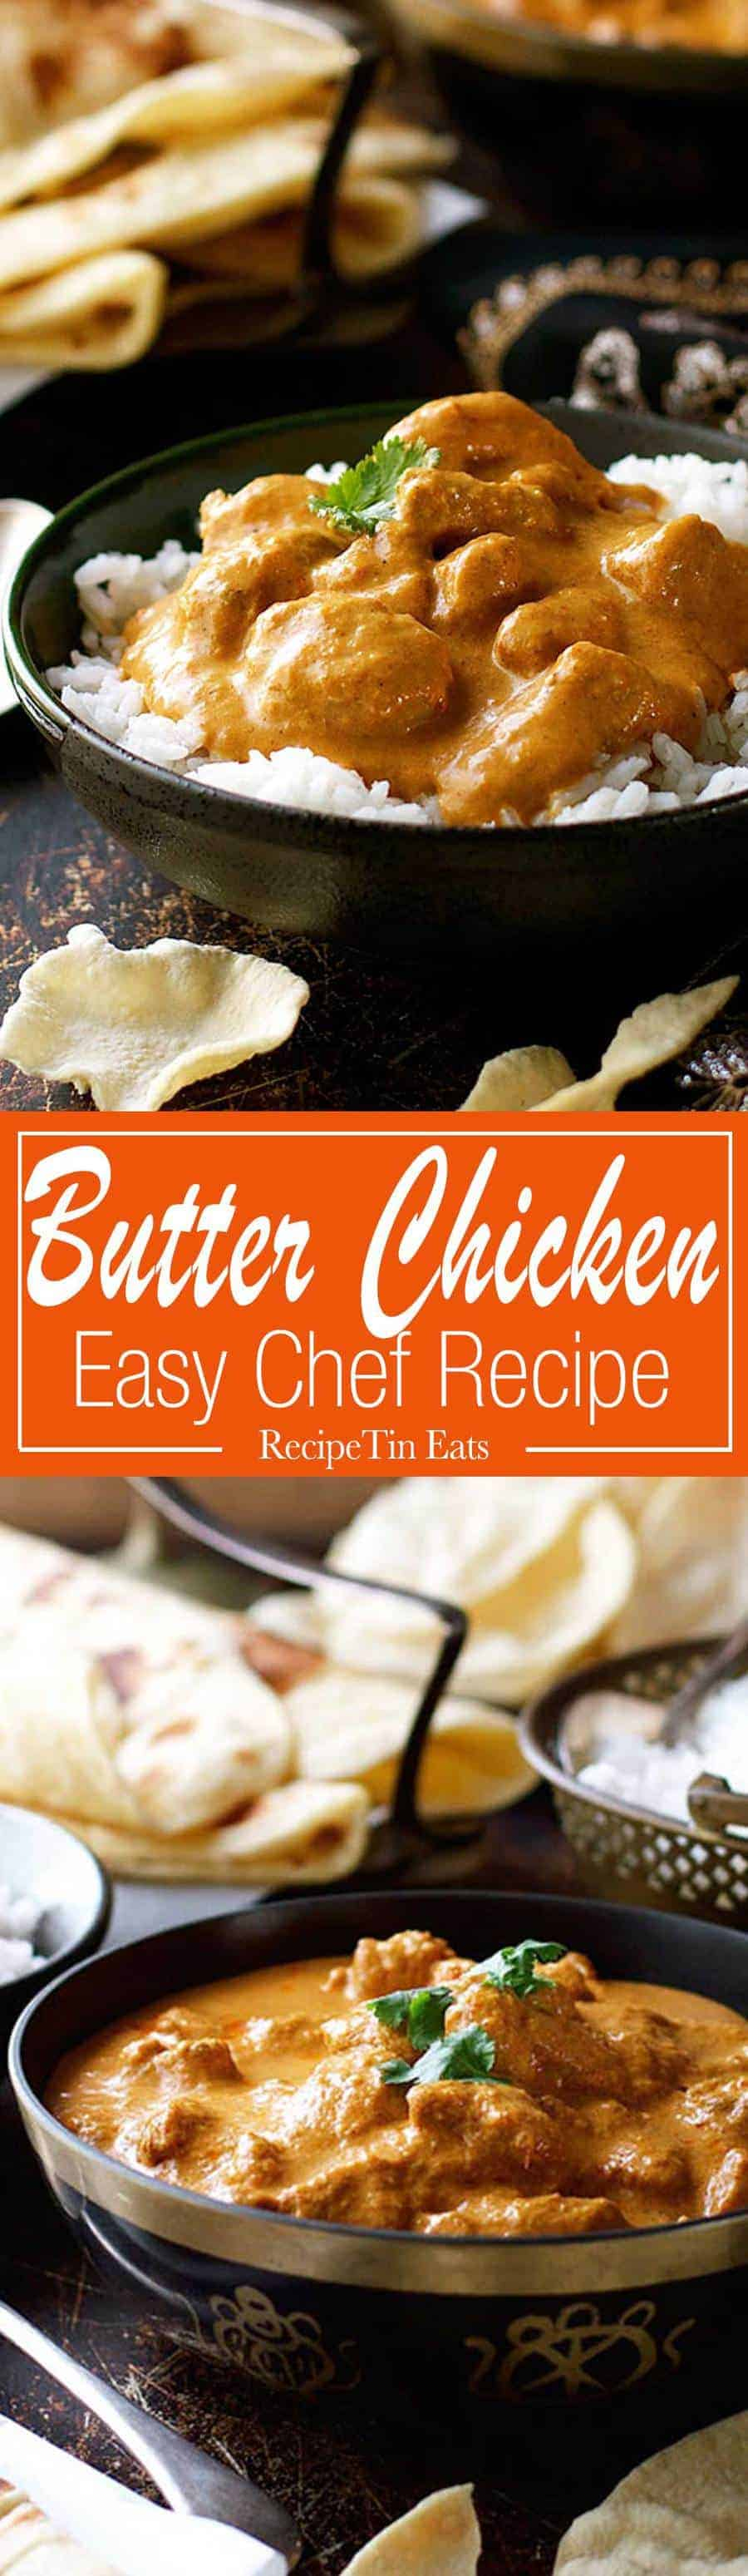 Butter Chicken | RecipeTin Eats